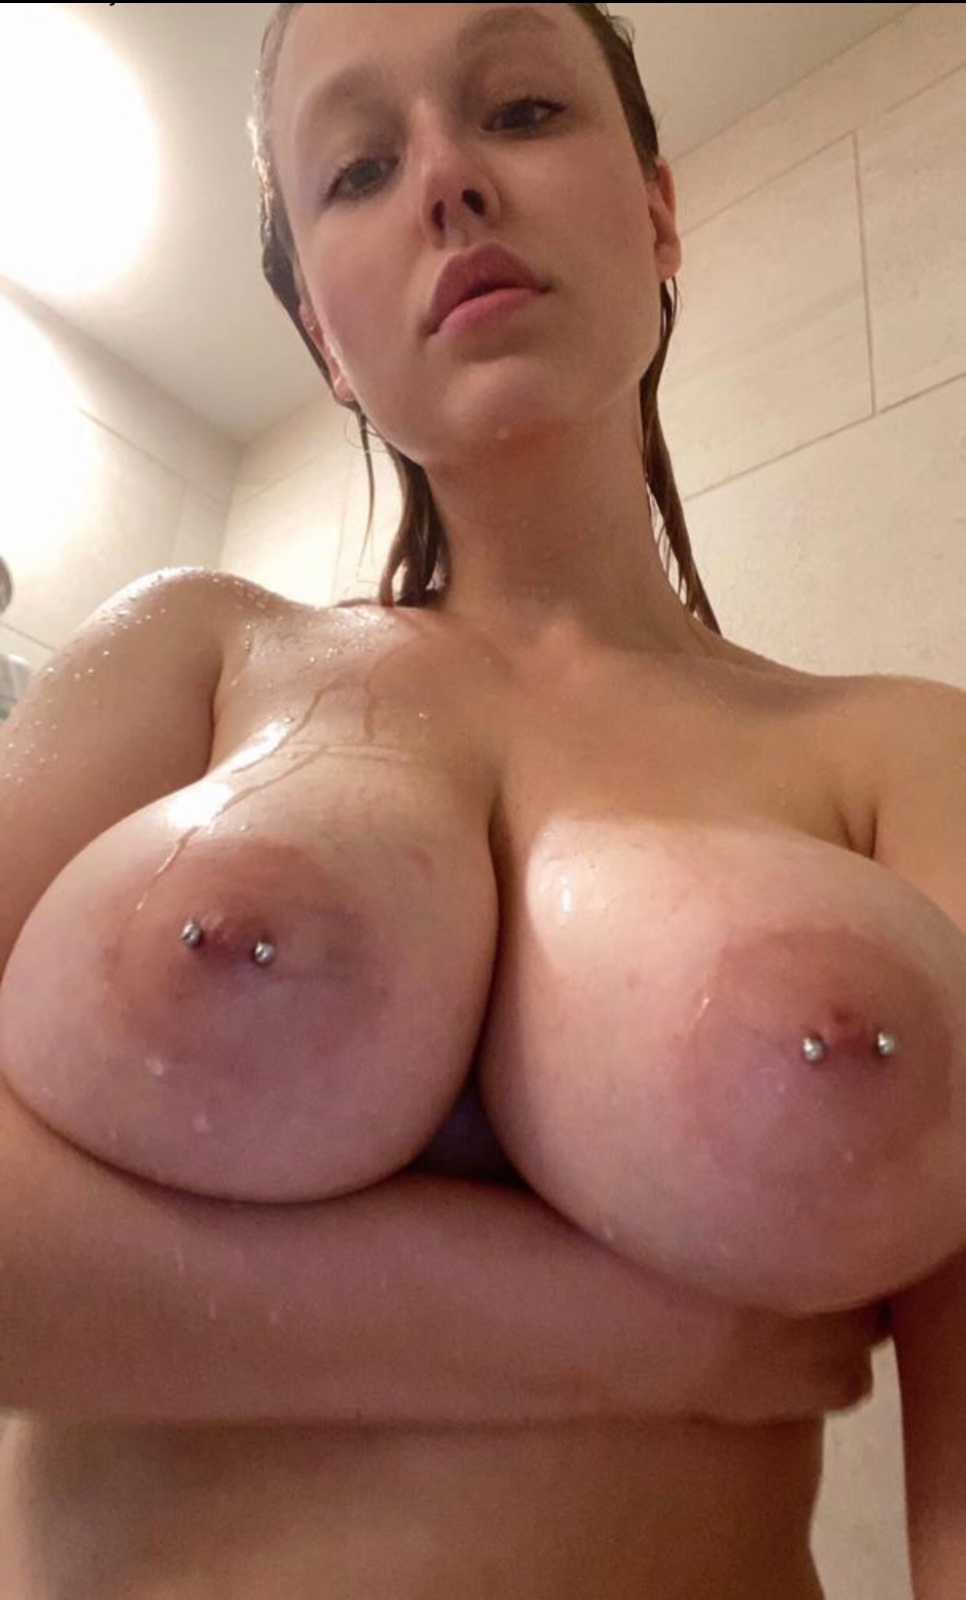 Title-Let's hookup for😘Blowjob100% YOUNG✅GF,69,Table shower,Footjob